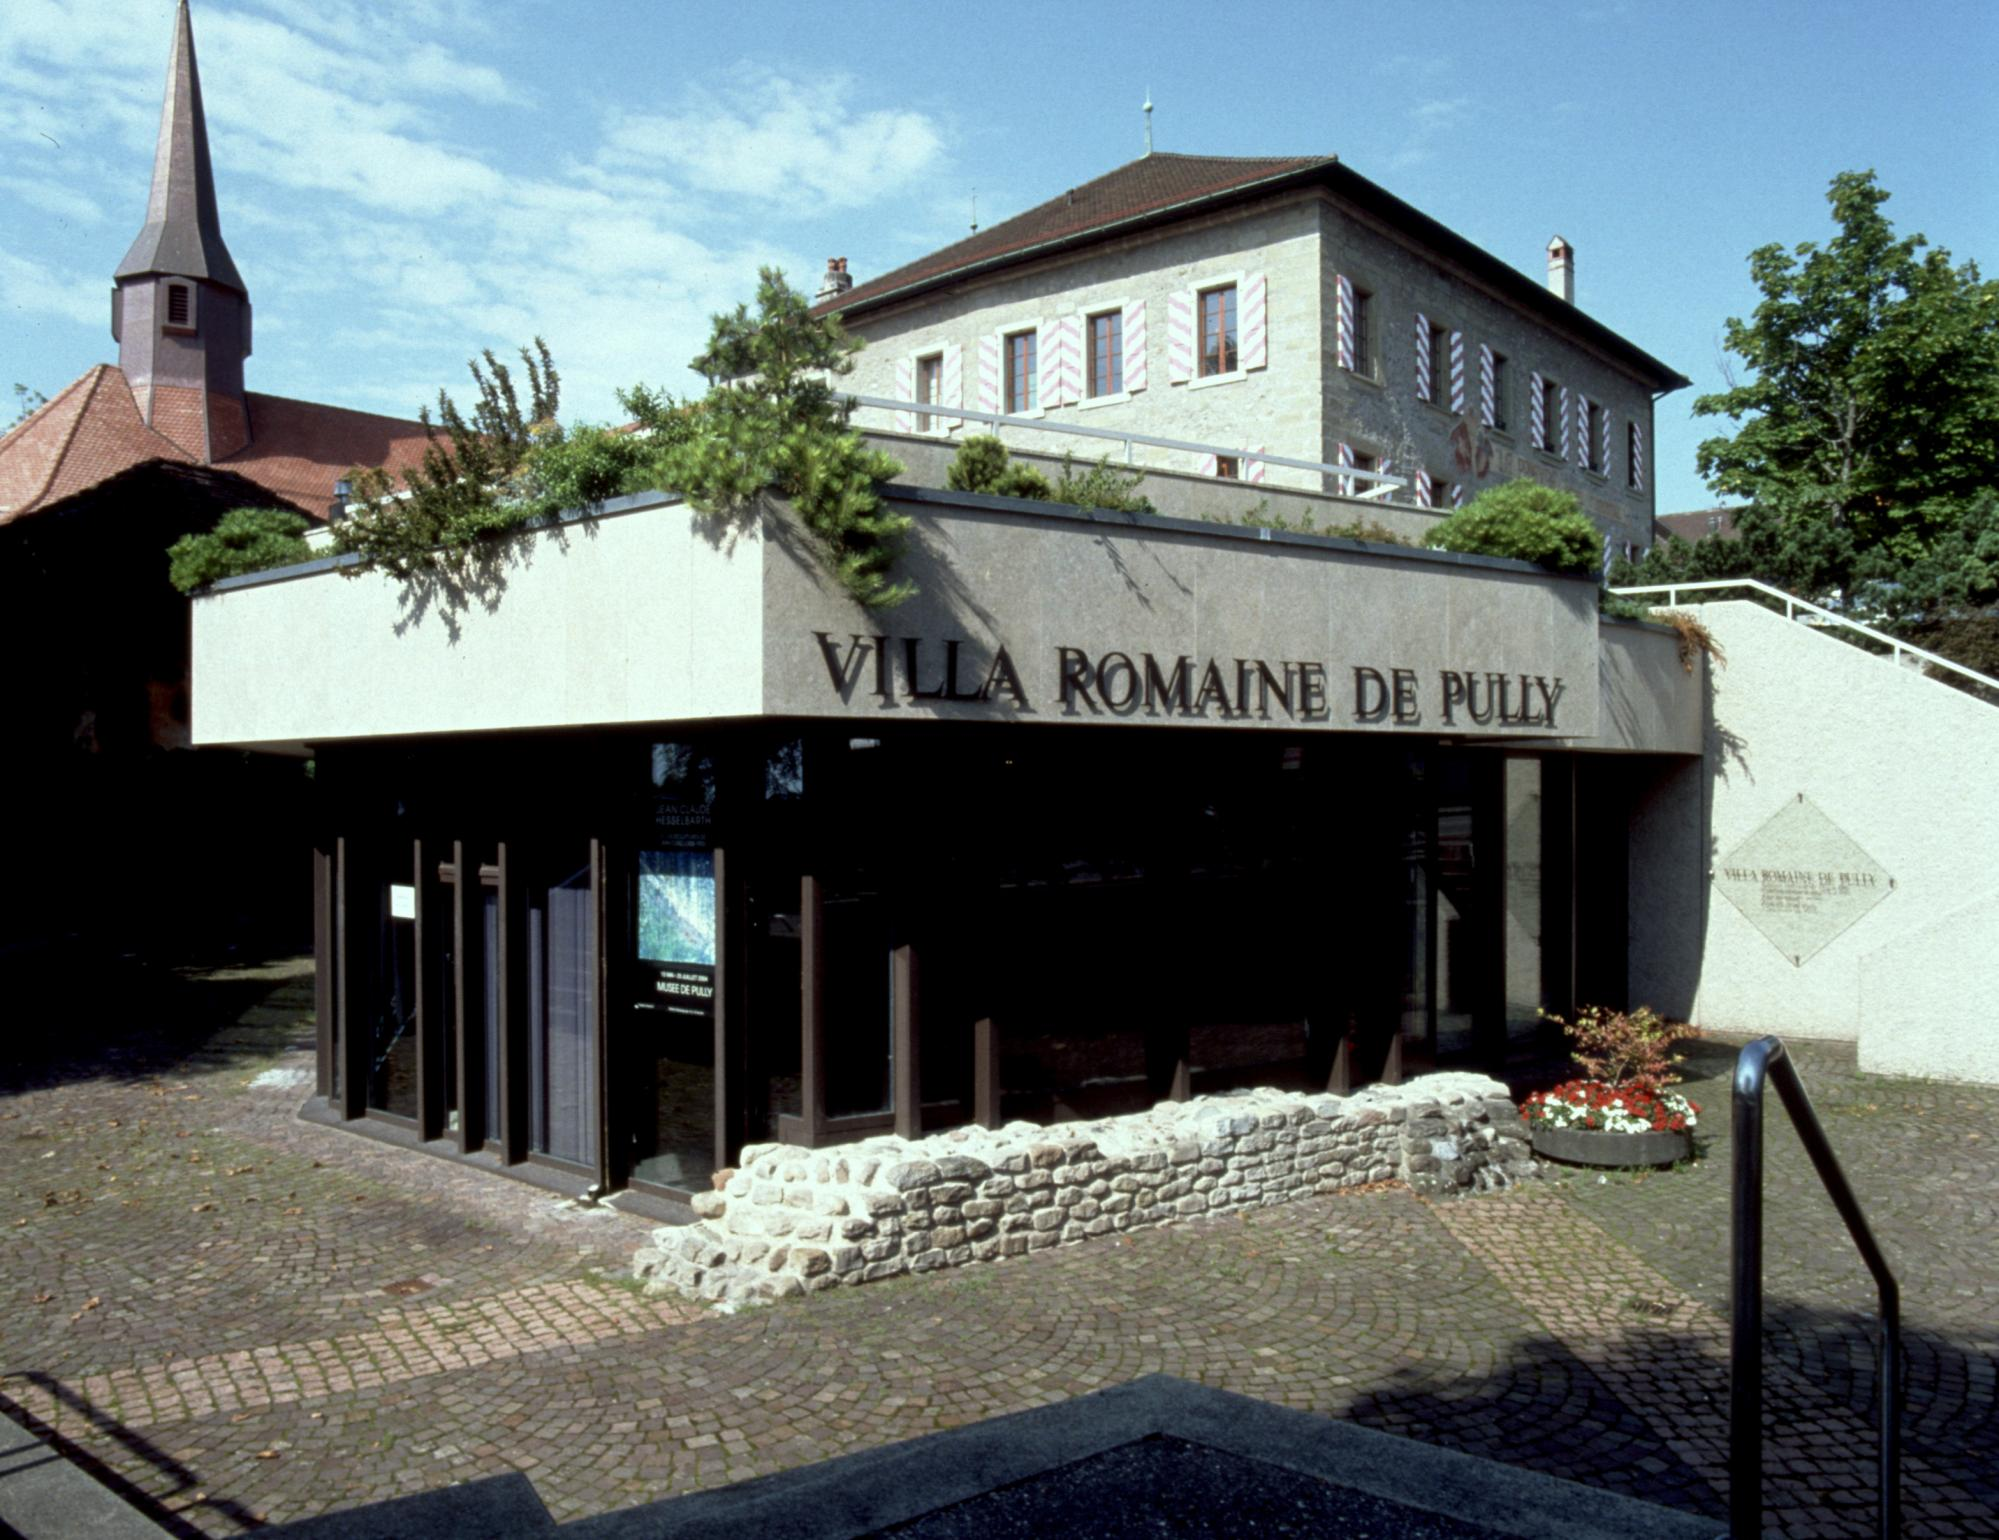 Villa romaine de Pully